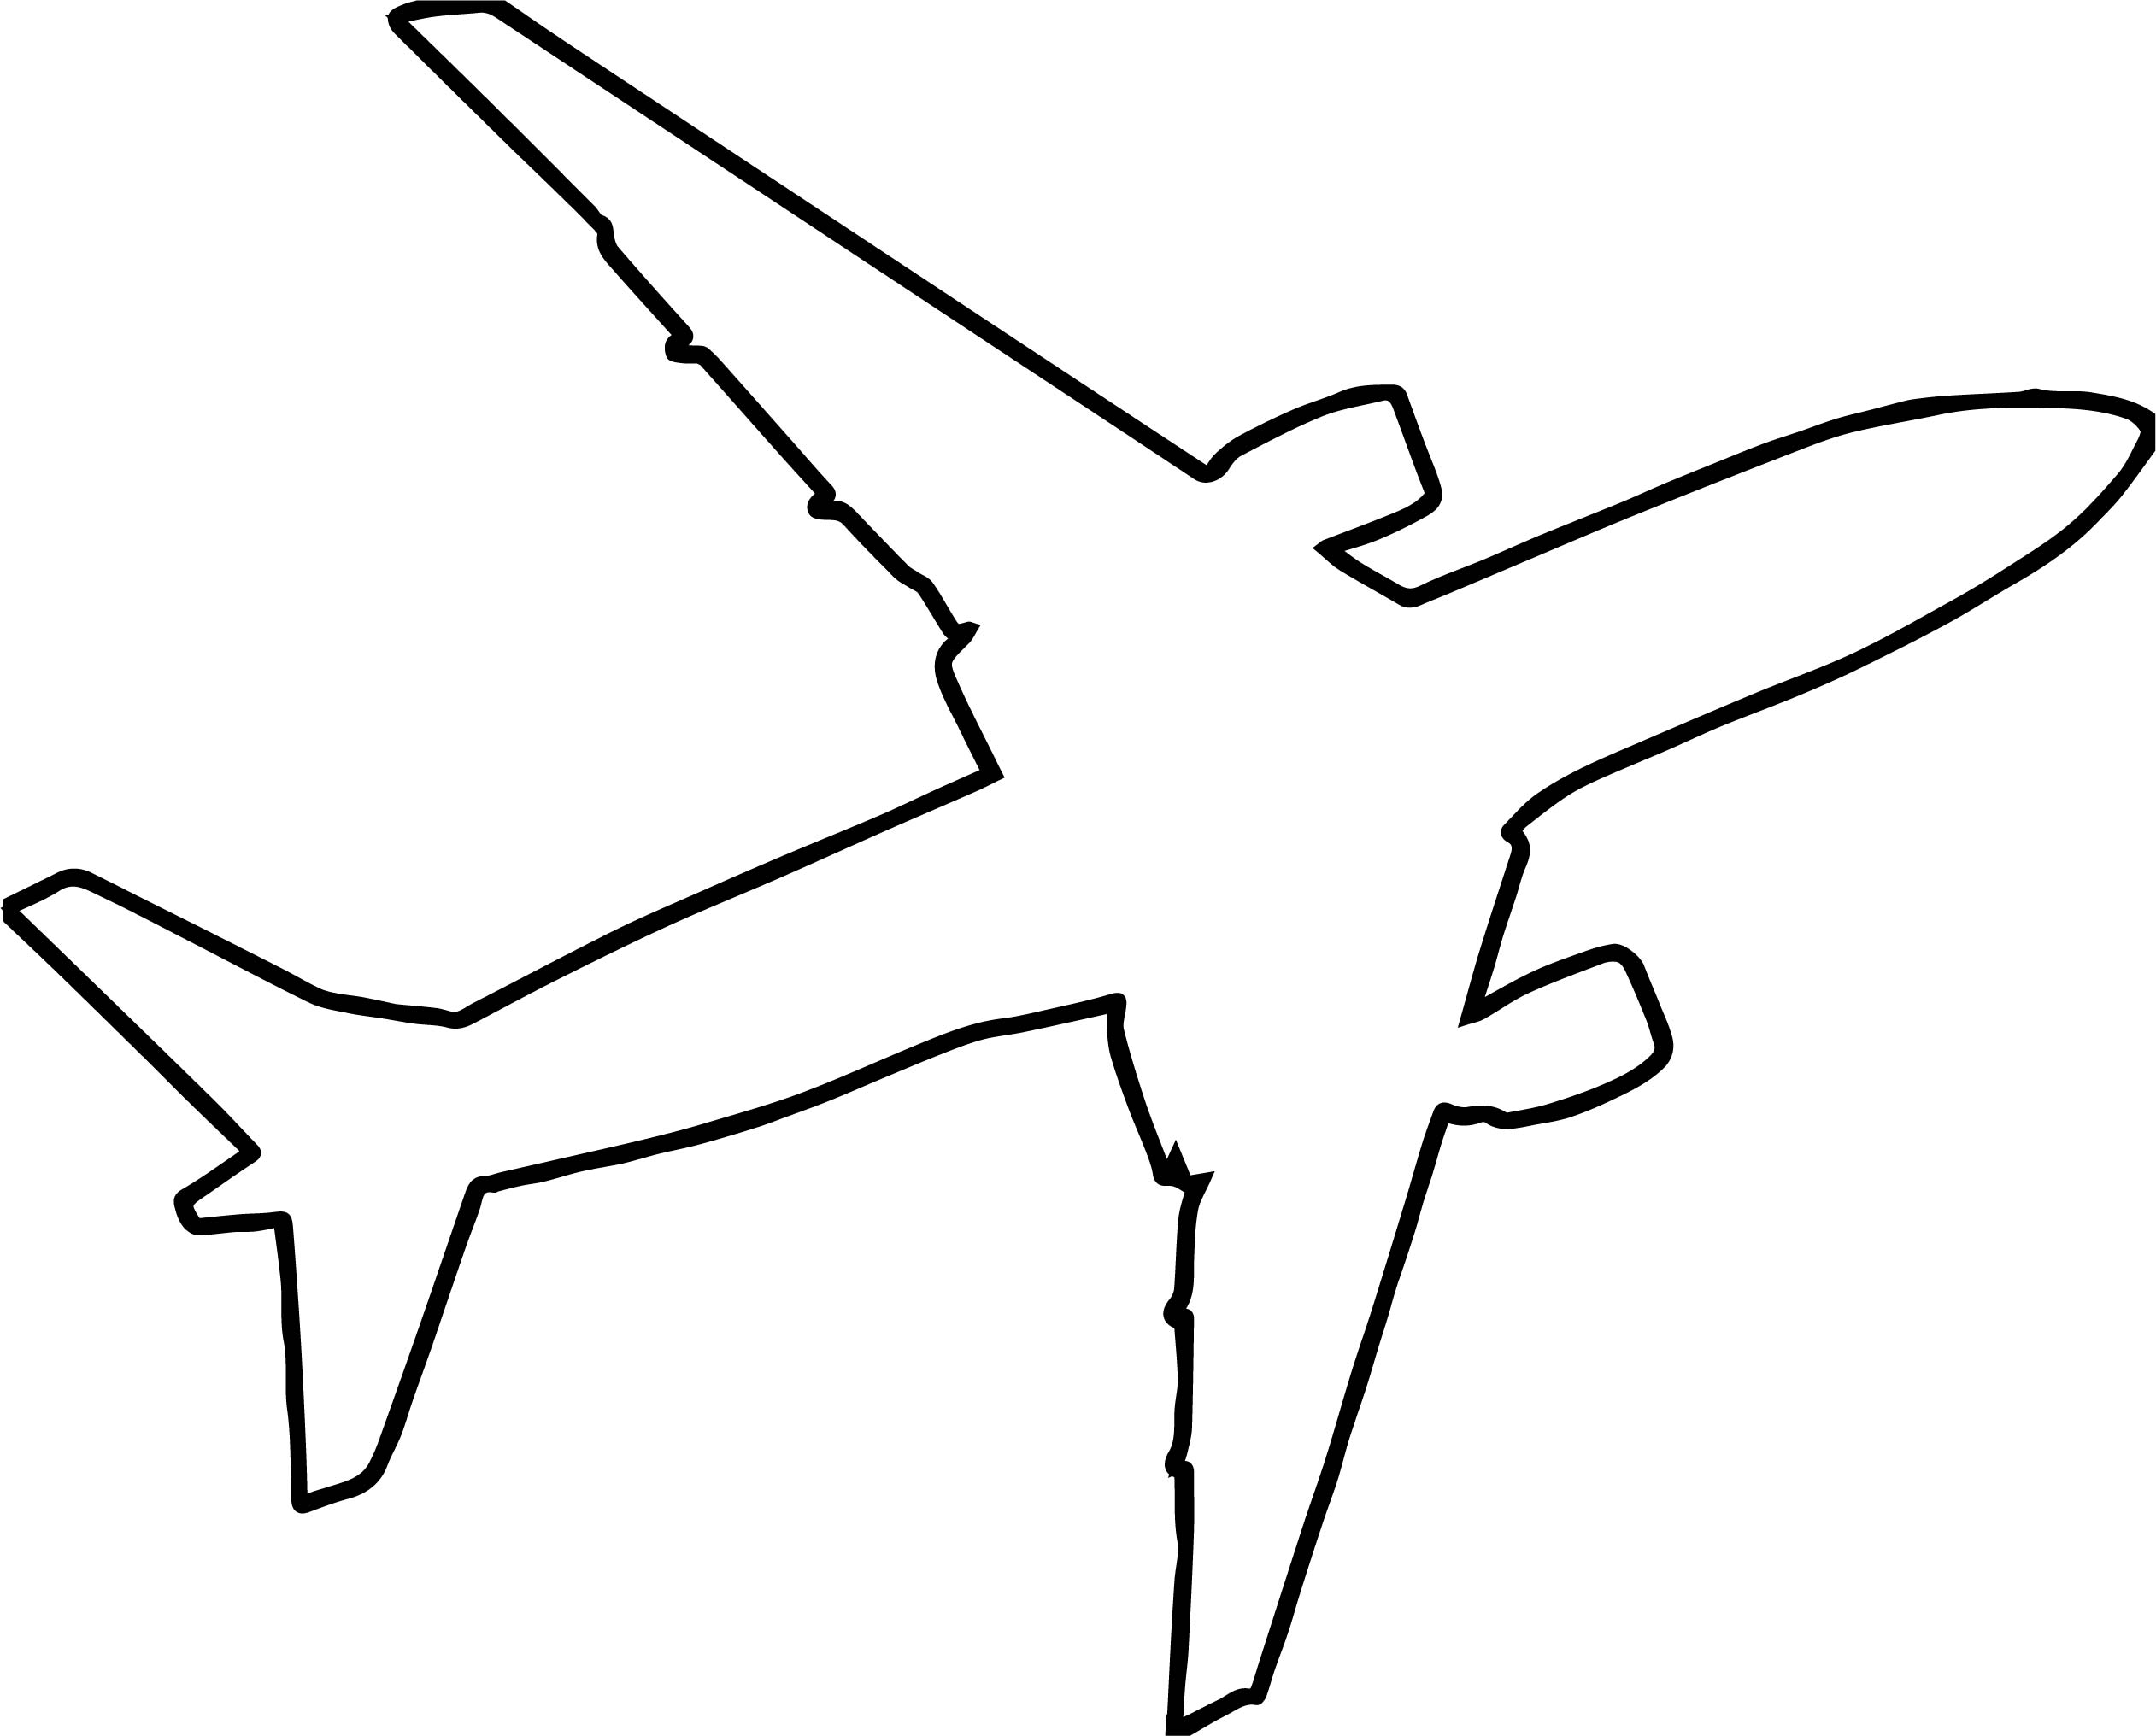 The best free Airplane silhouette